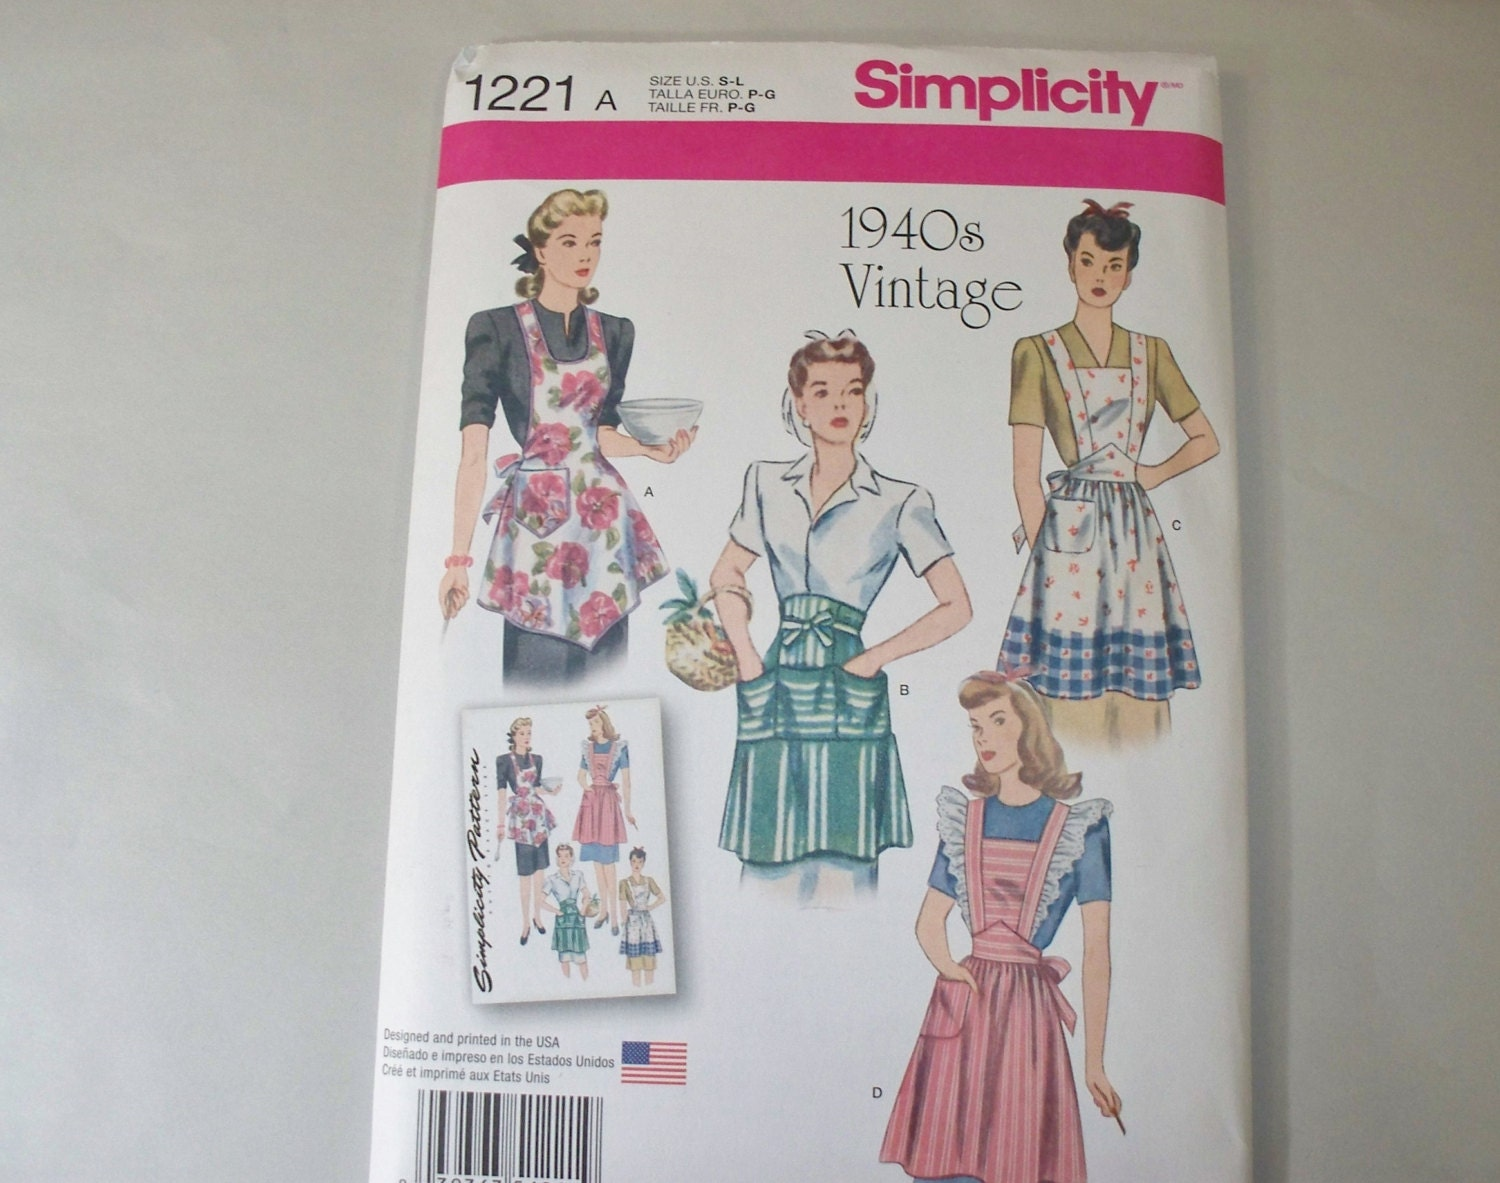 New Simplicity Vintage Style Apron Pattern 1221 Free US